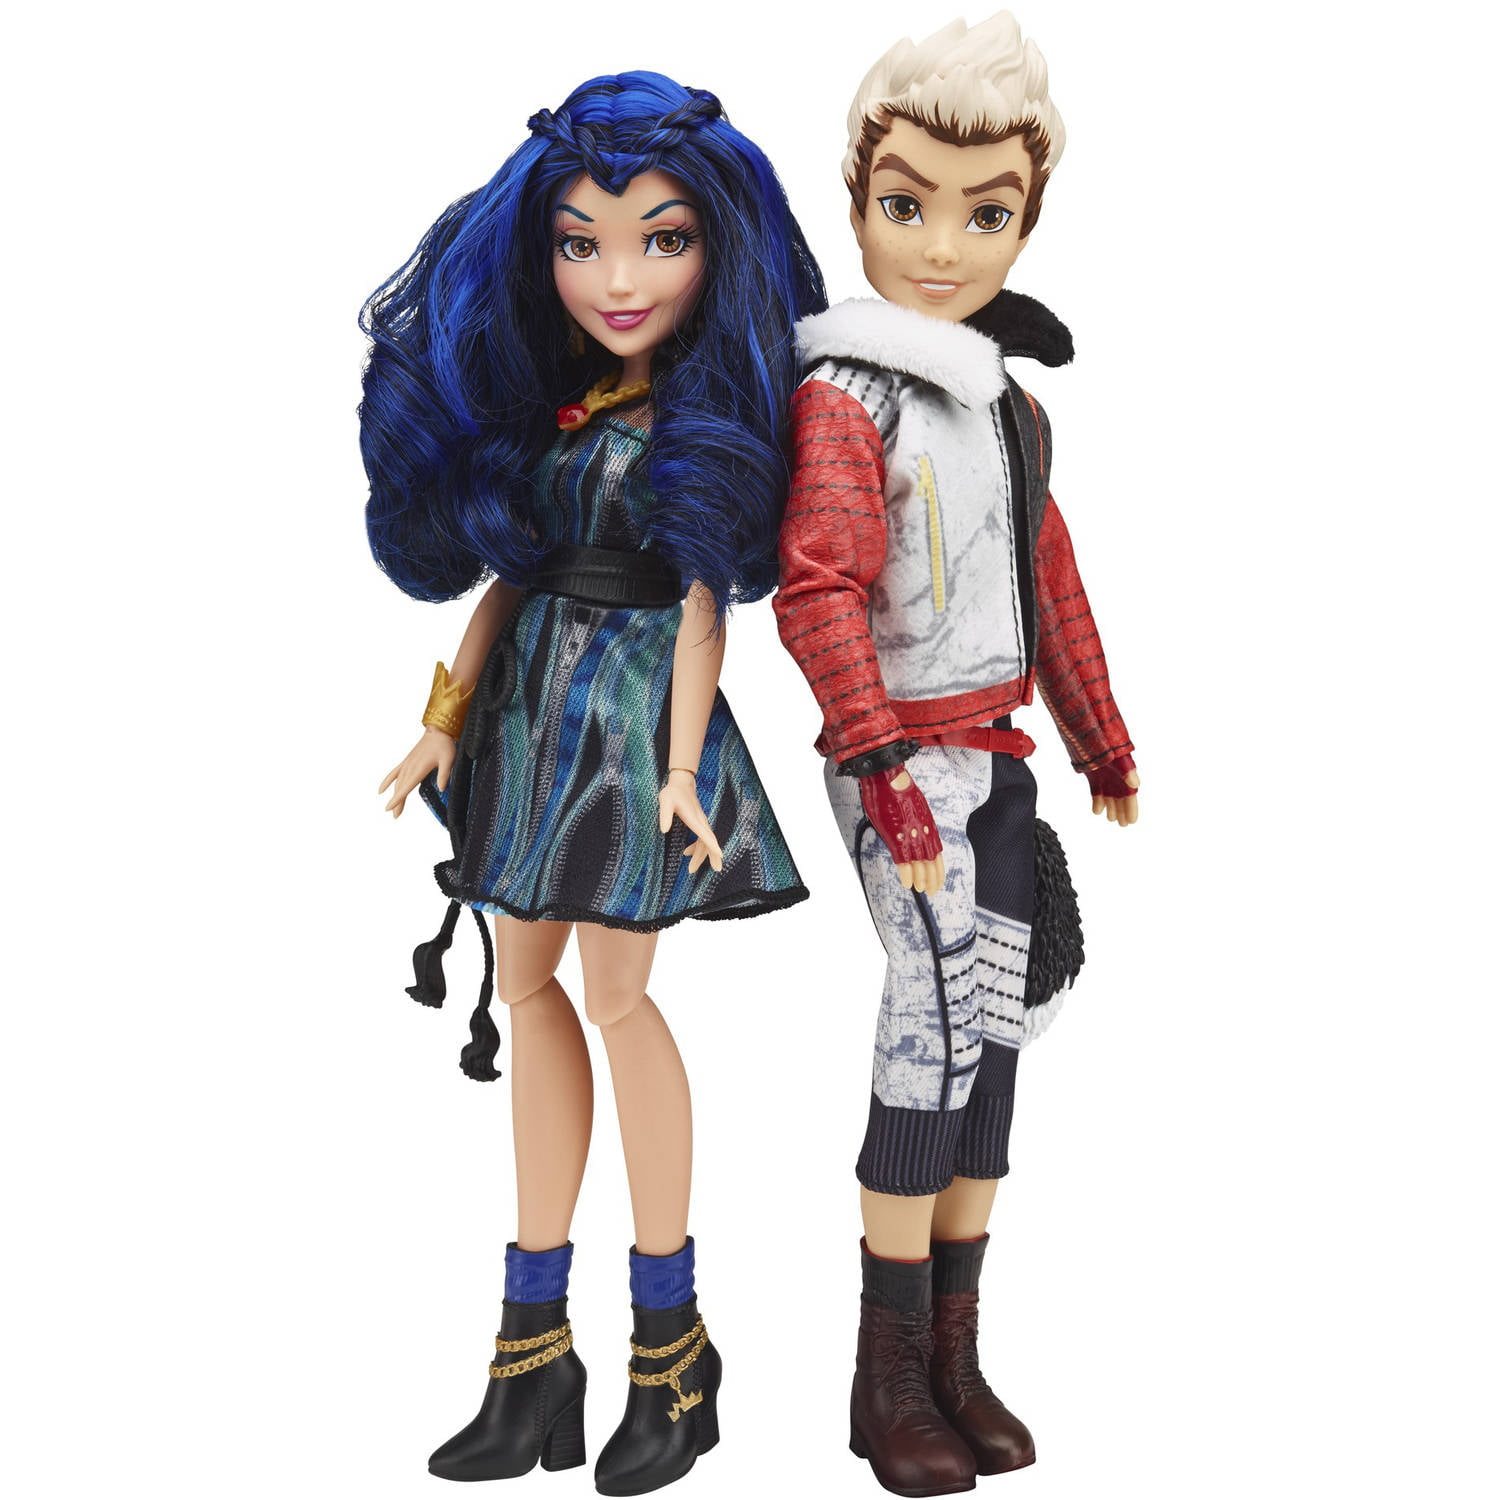 Disney Descendants 2-Pack Evie Isle of the Lost and Carlos Isle of the Lost Dolls by Hasbro